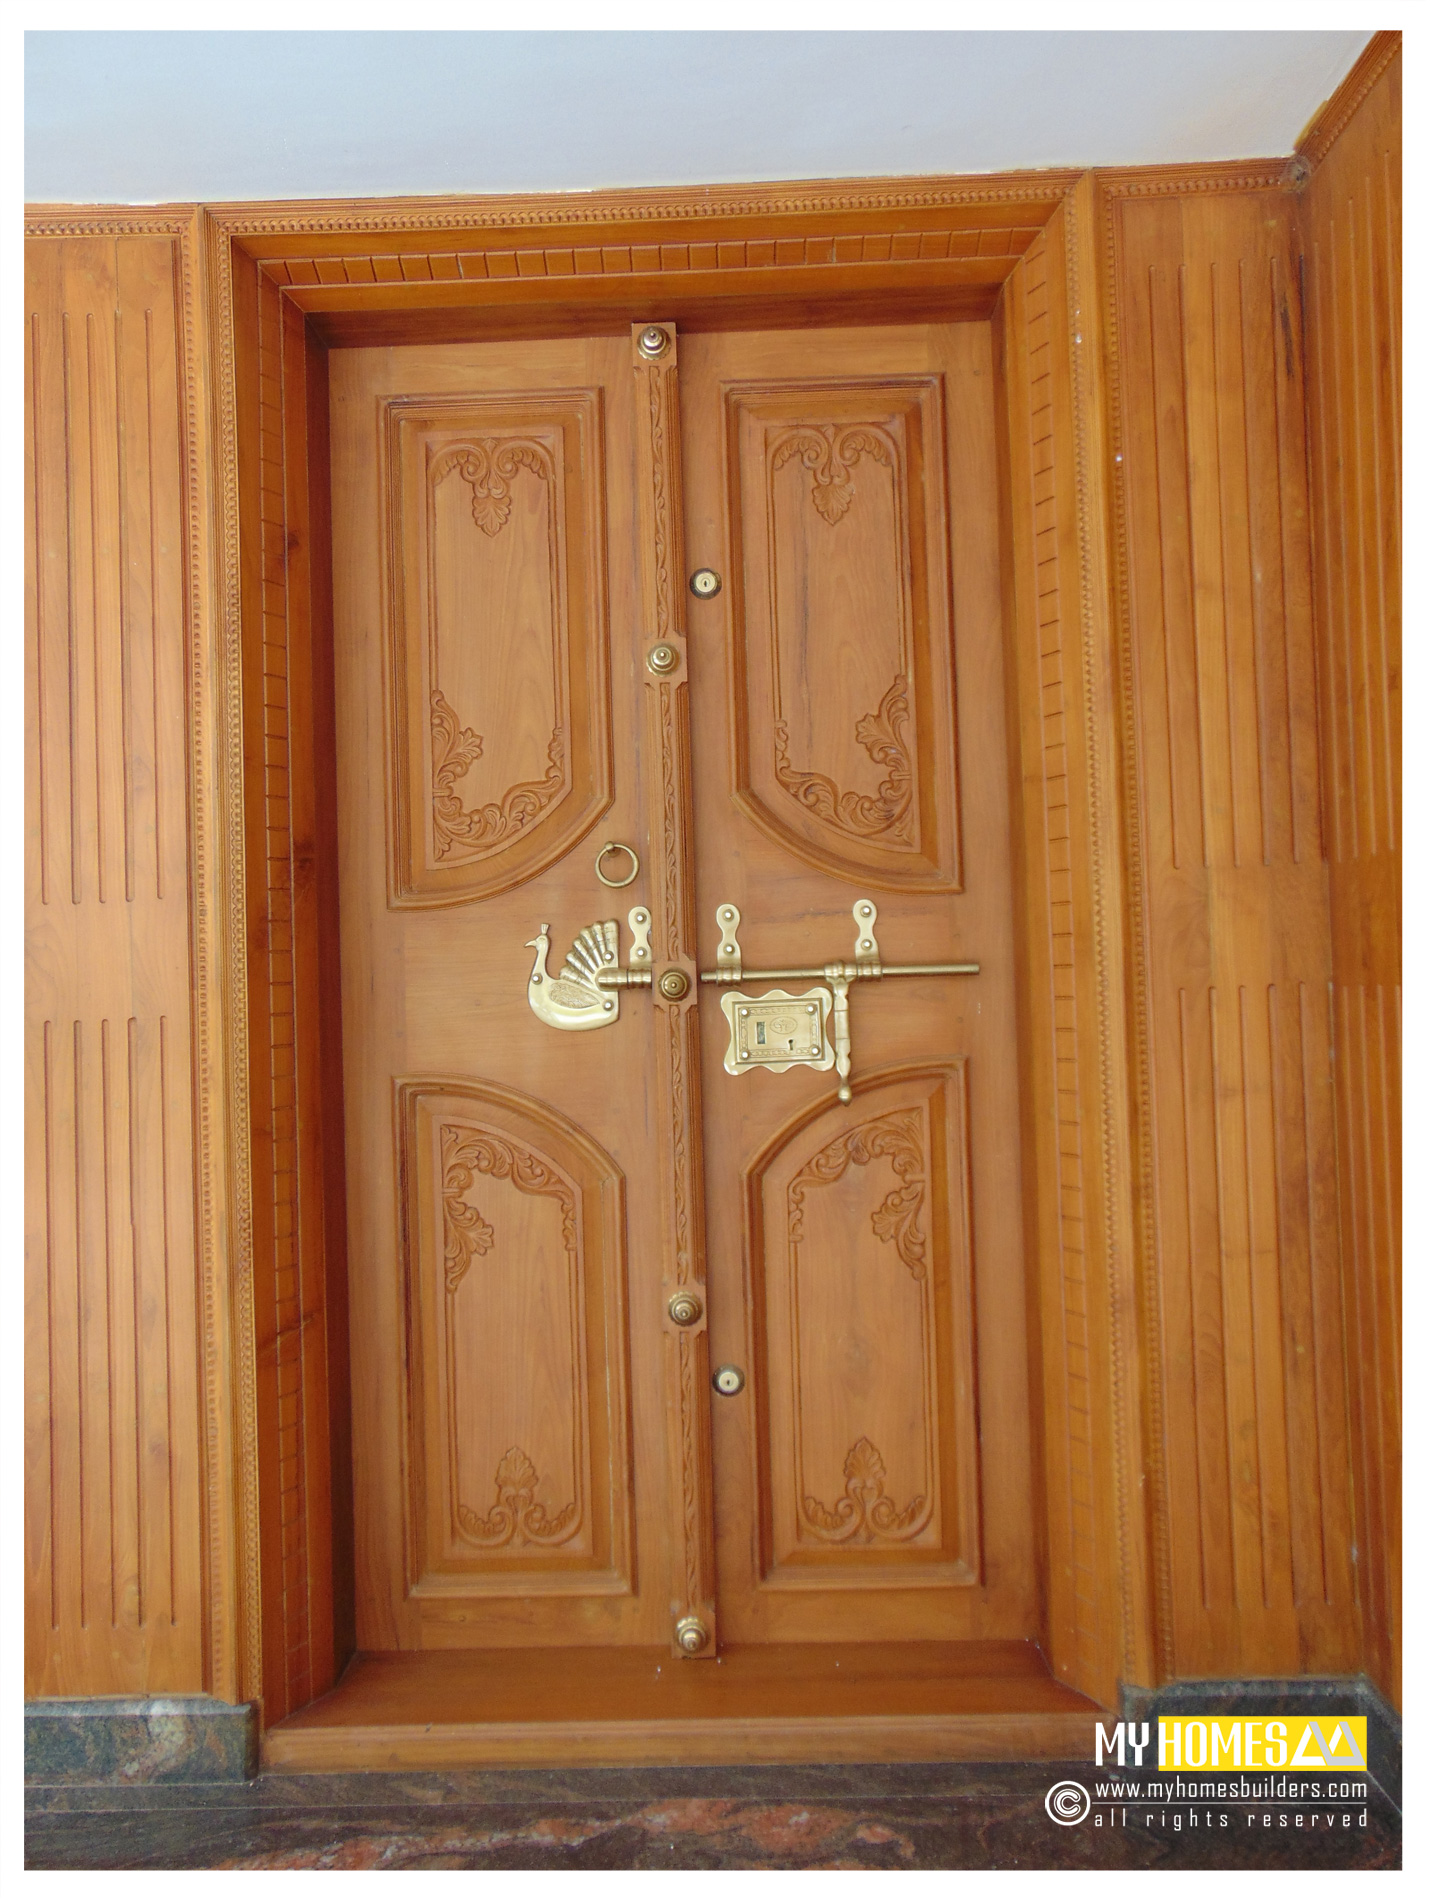 Wooden door design in pakistan new home designs latest of for Traditional wooden door design ideas